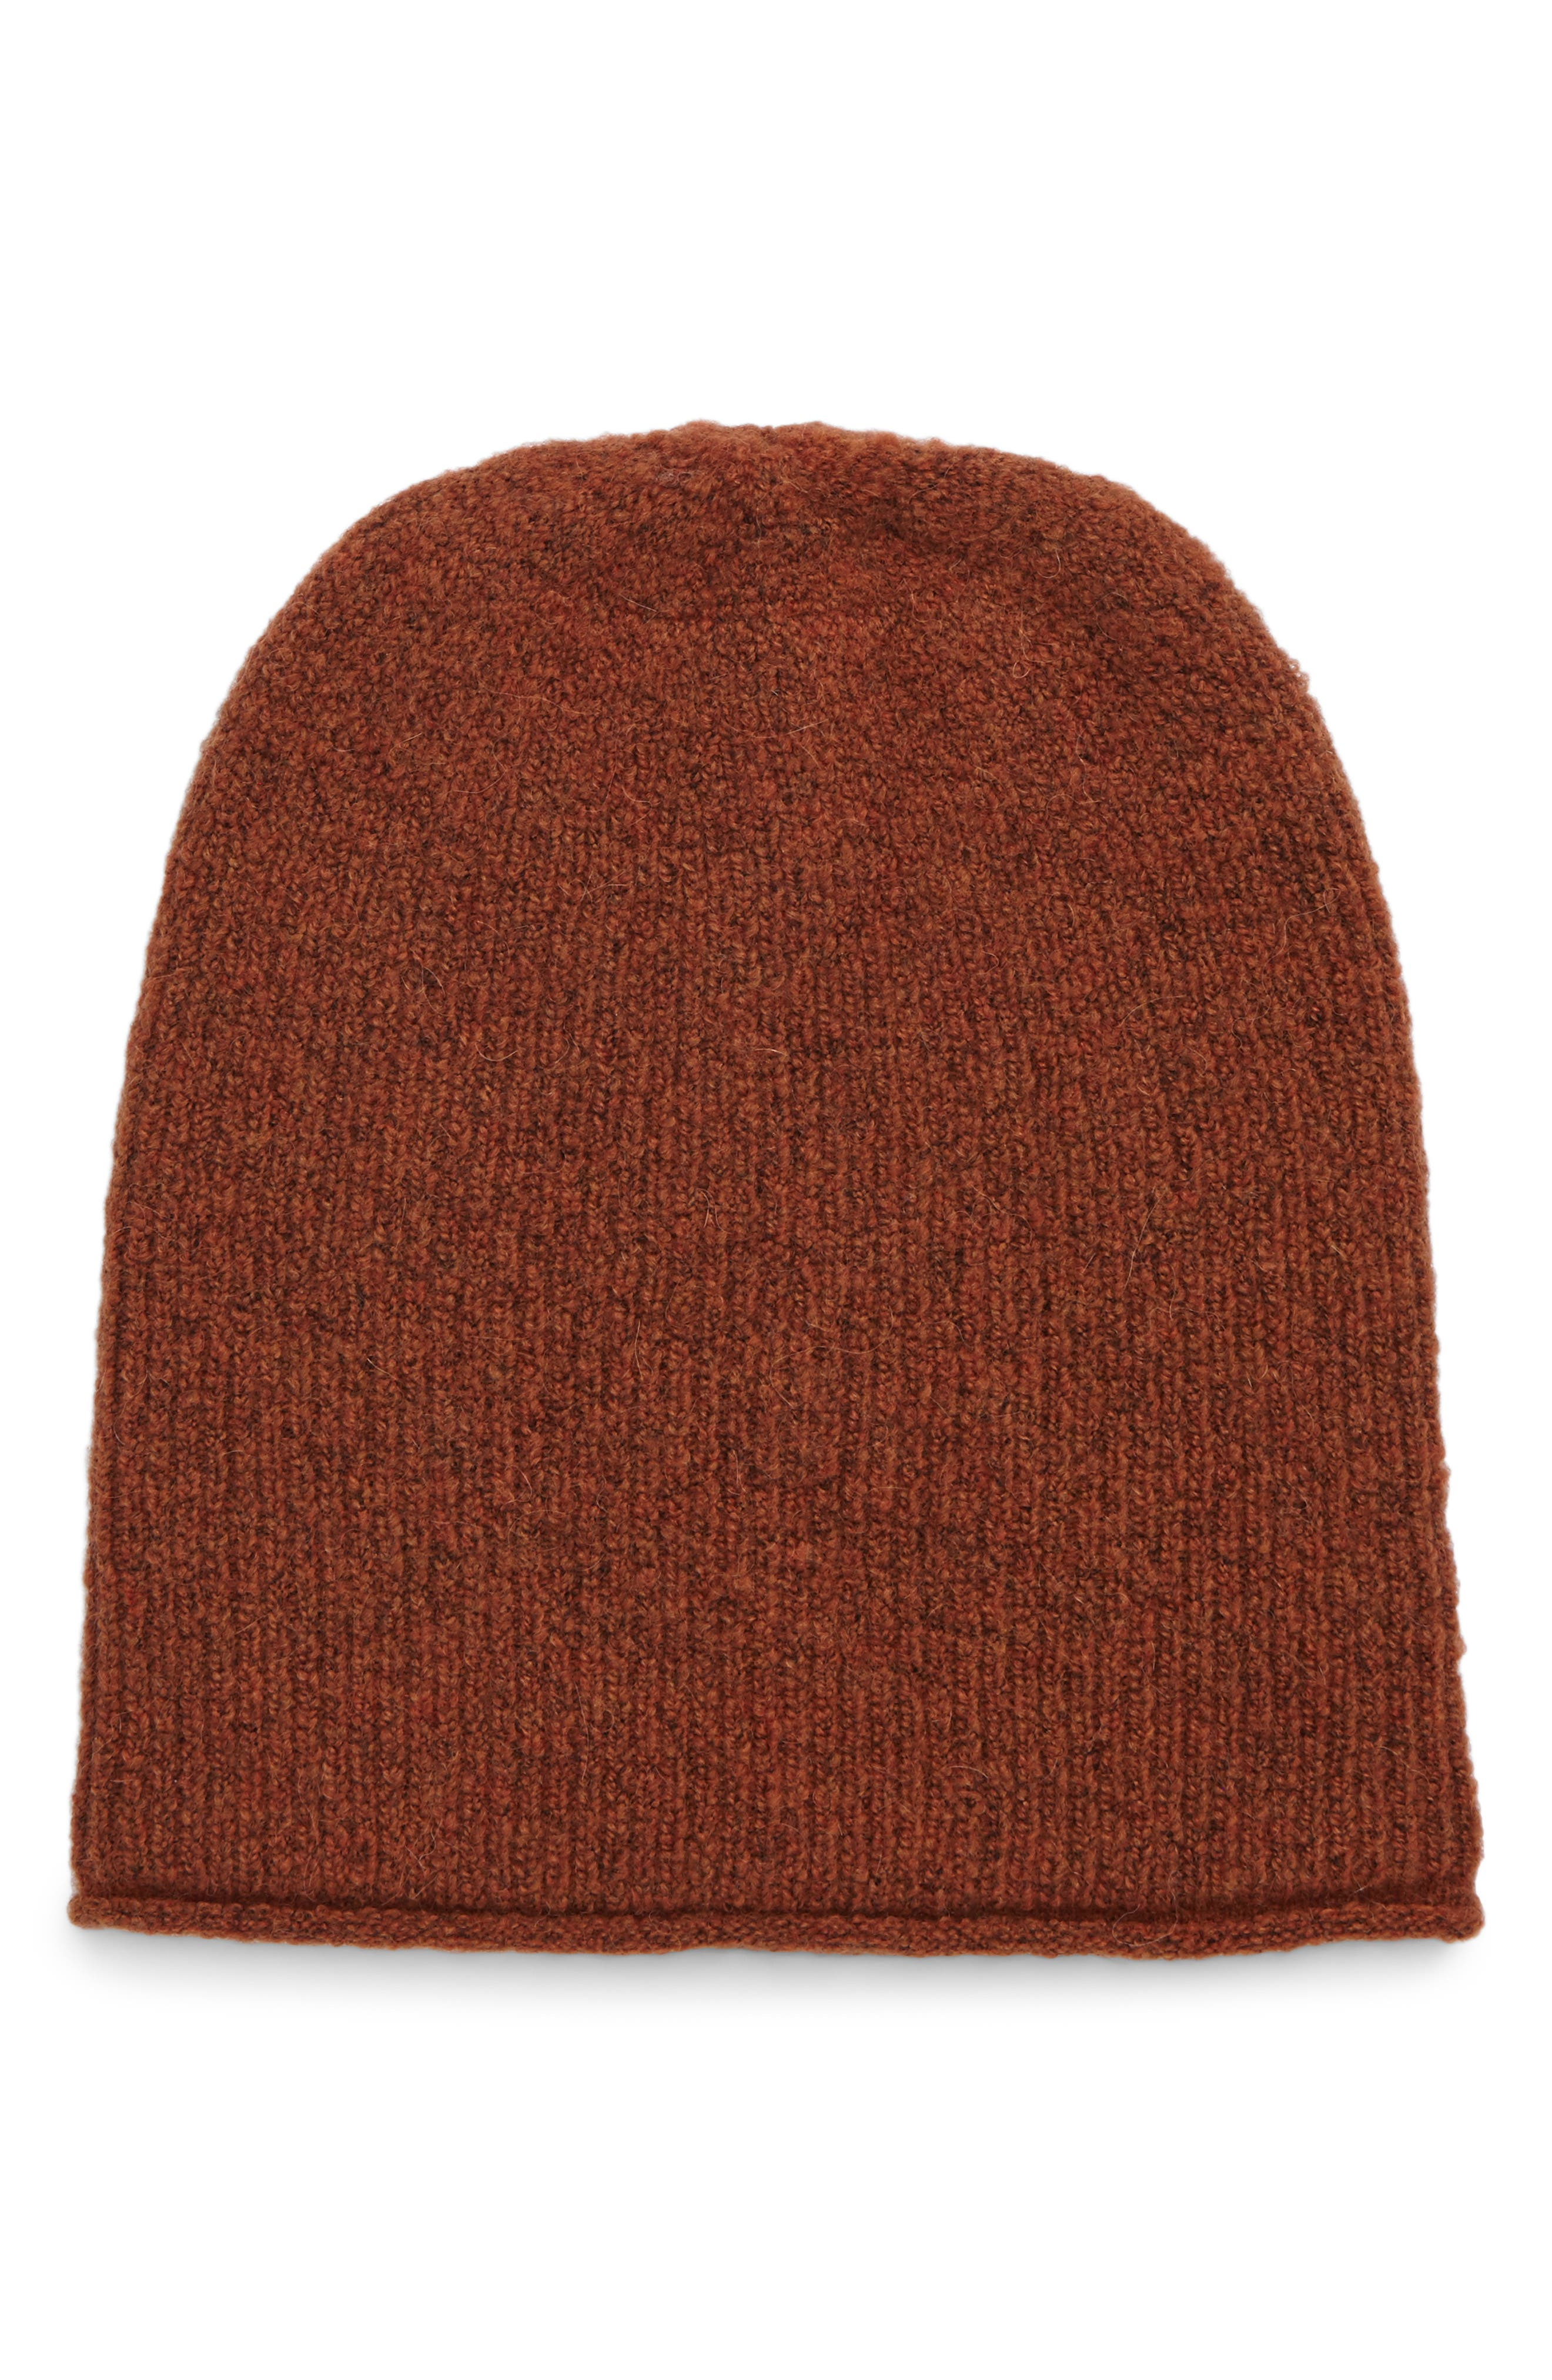 Ryder Beanie,                         Main,                         color, Heather After Glow